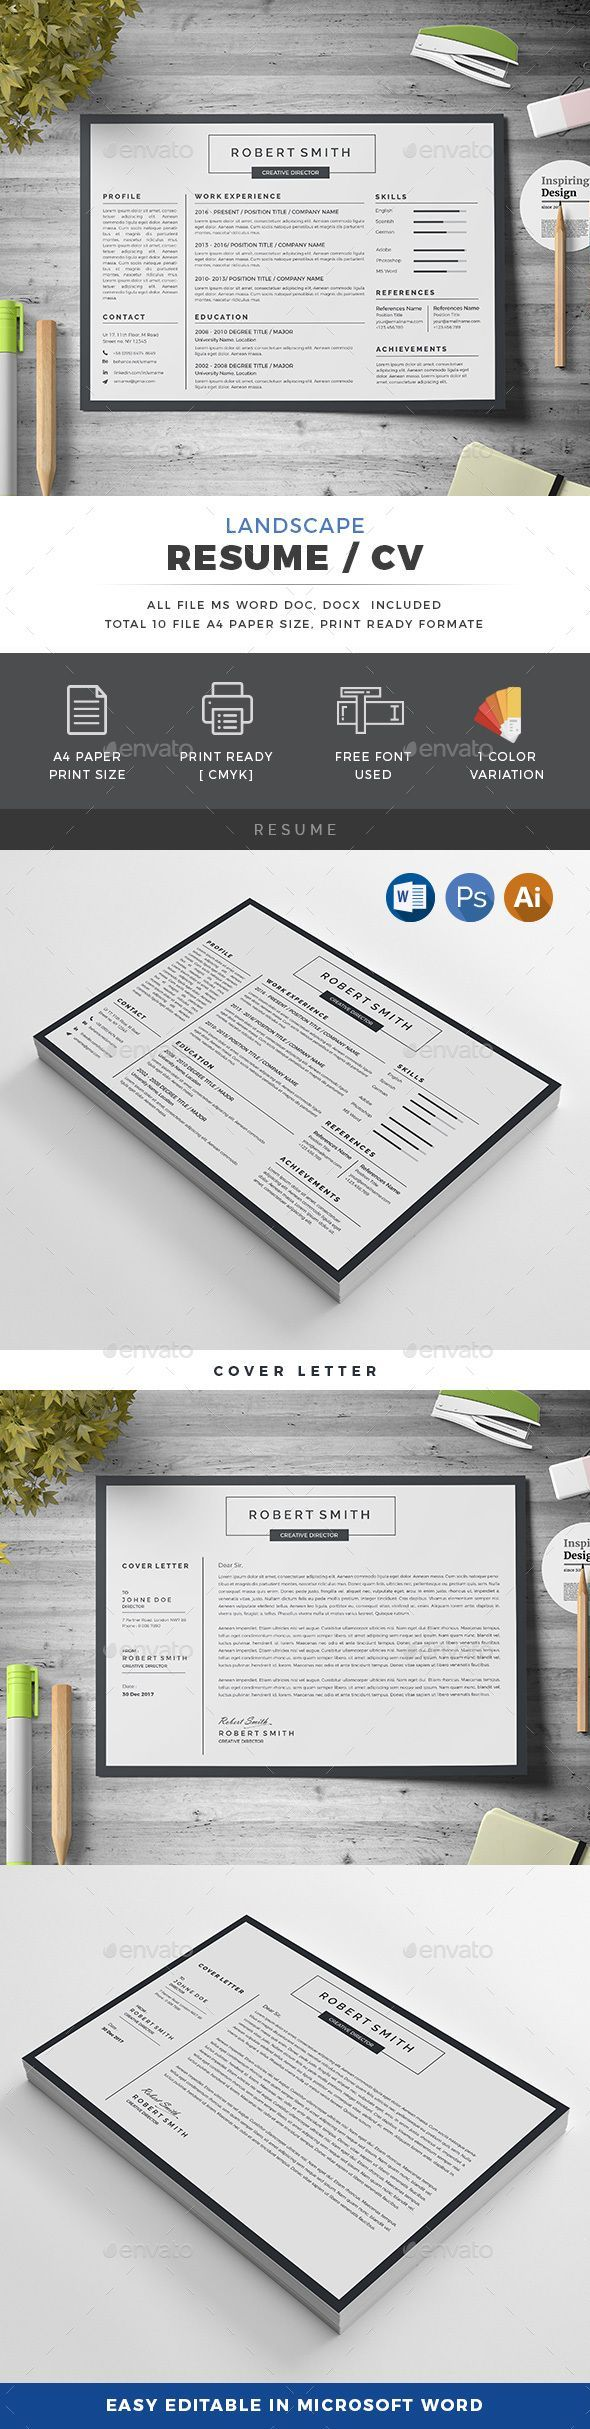 Resume Cv Templates Free Download%0A letter to the judge format